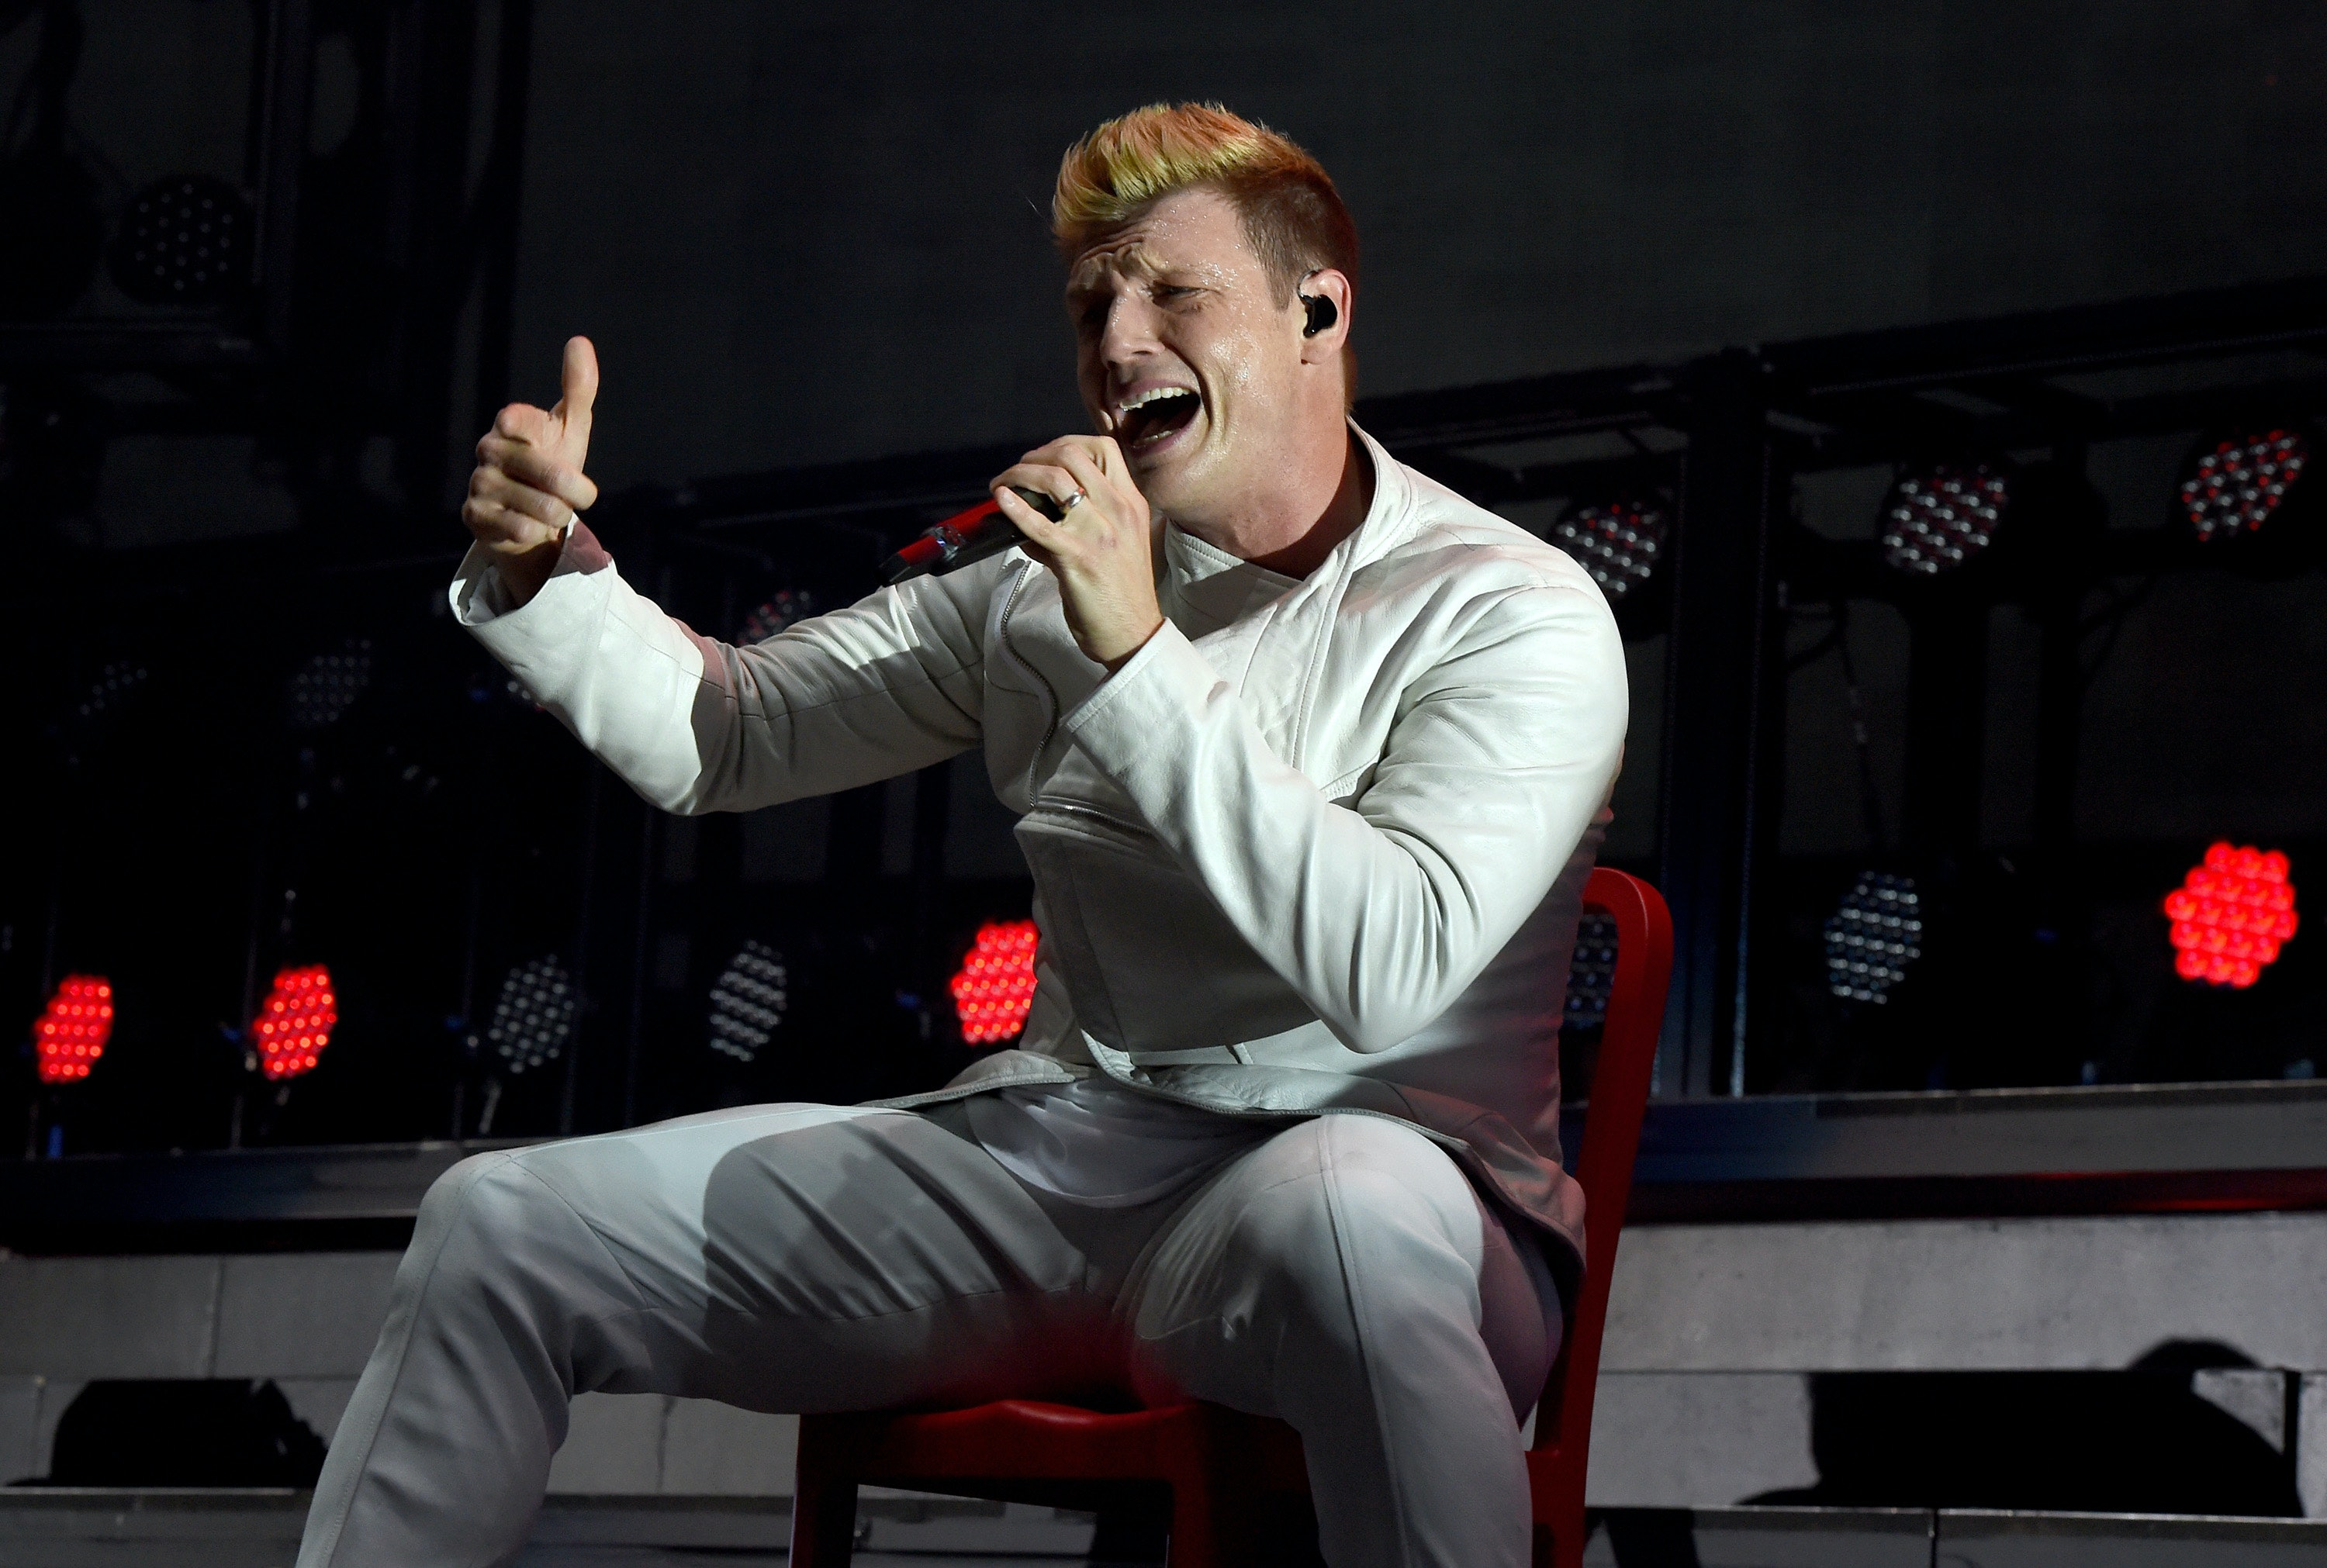 Nick Carter of Backstreet Boys accused of assault